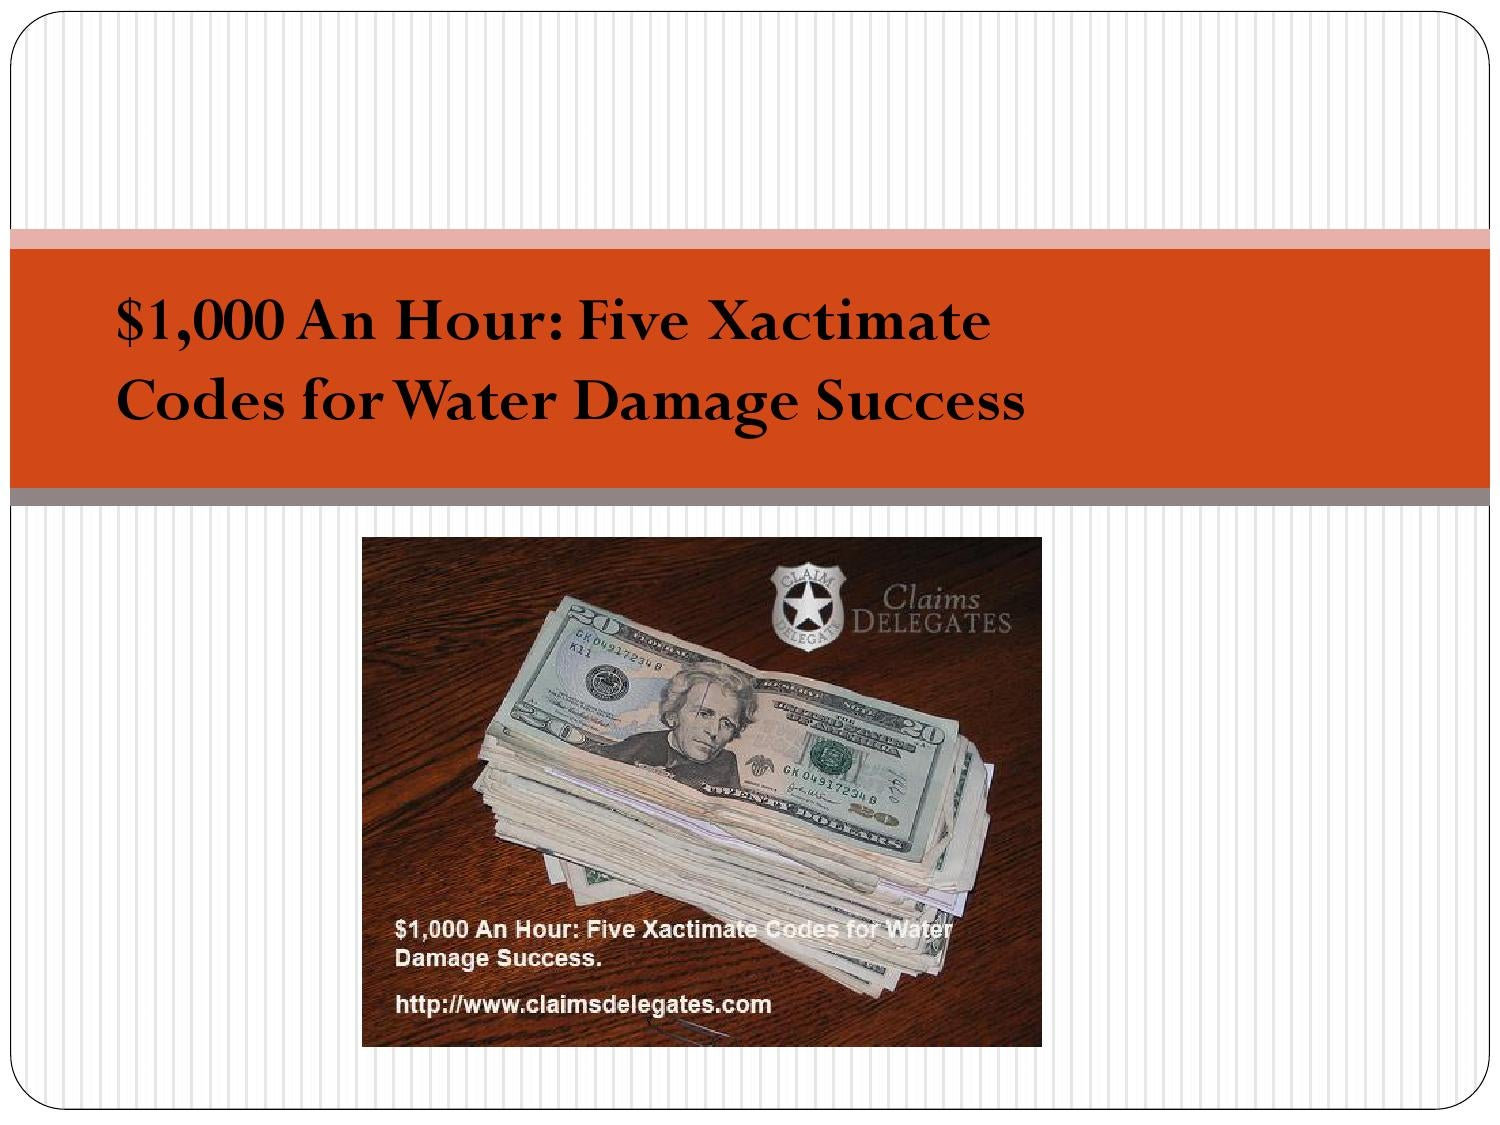 $1,000 An Hour: Five Xactimate Codes for Water Damage